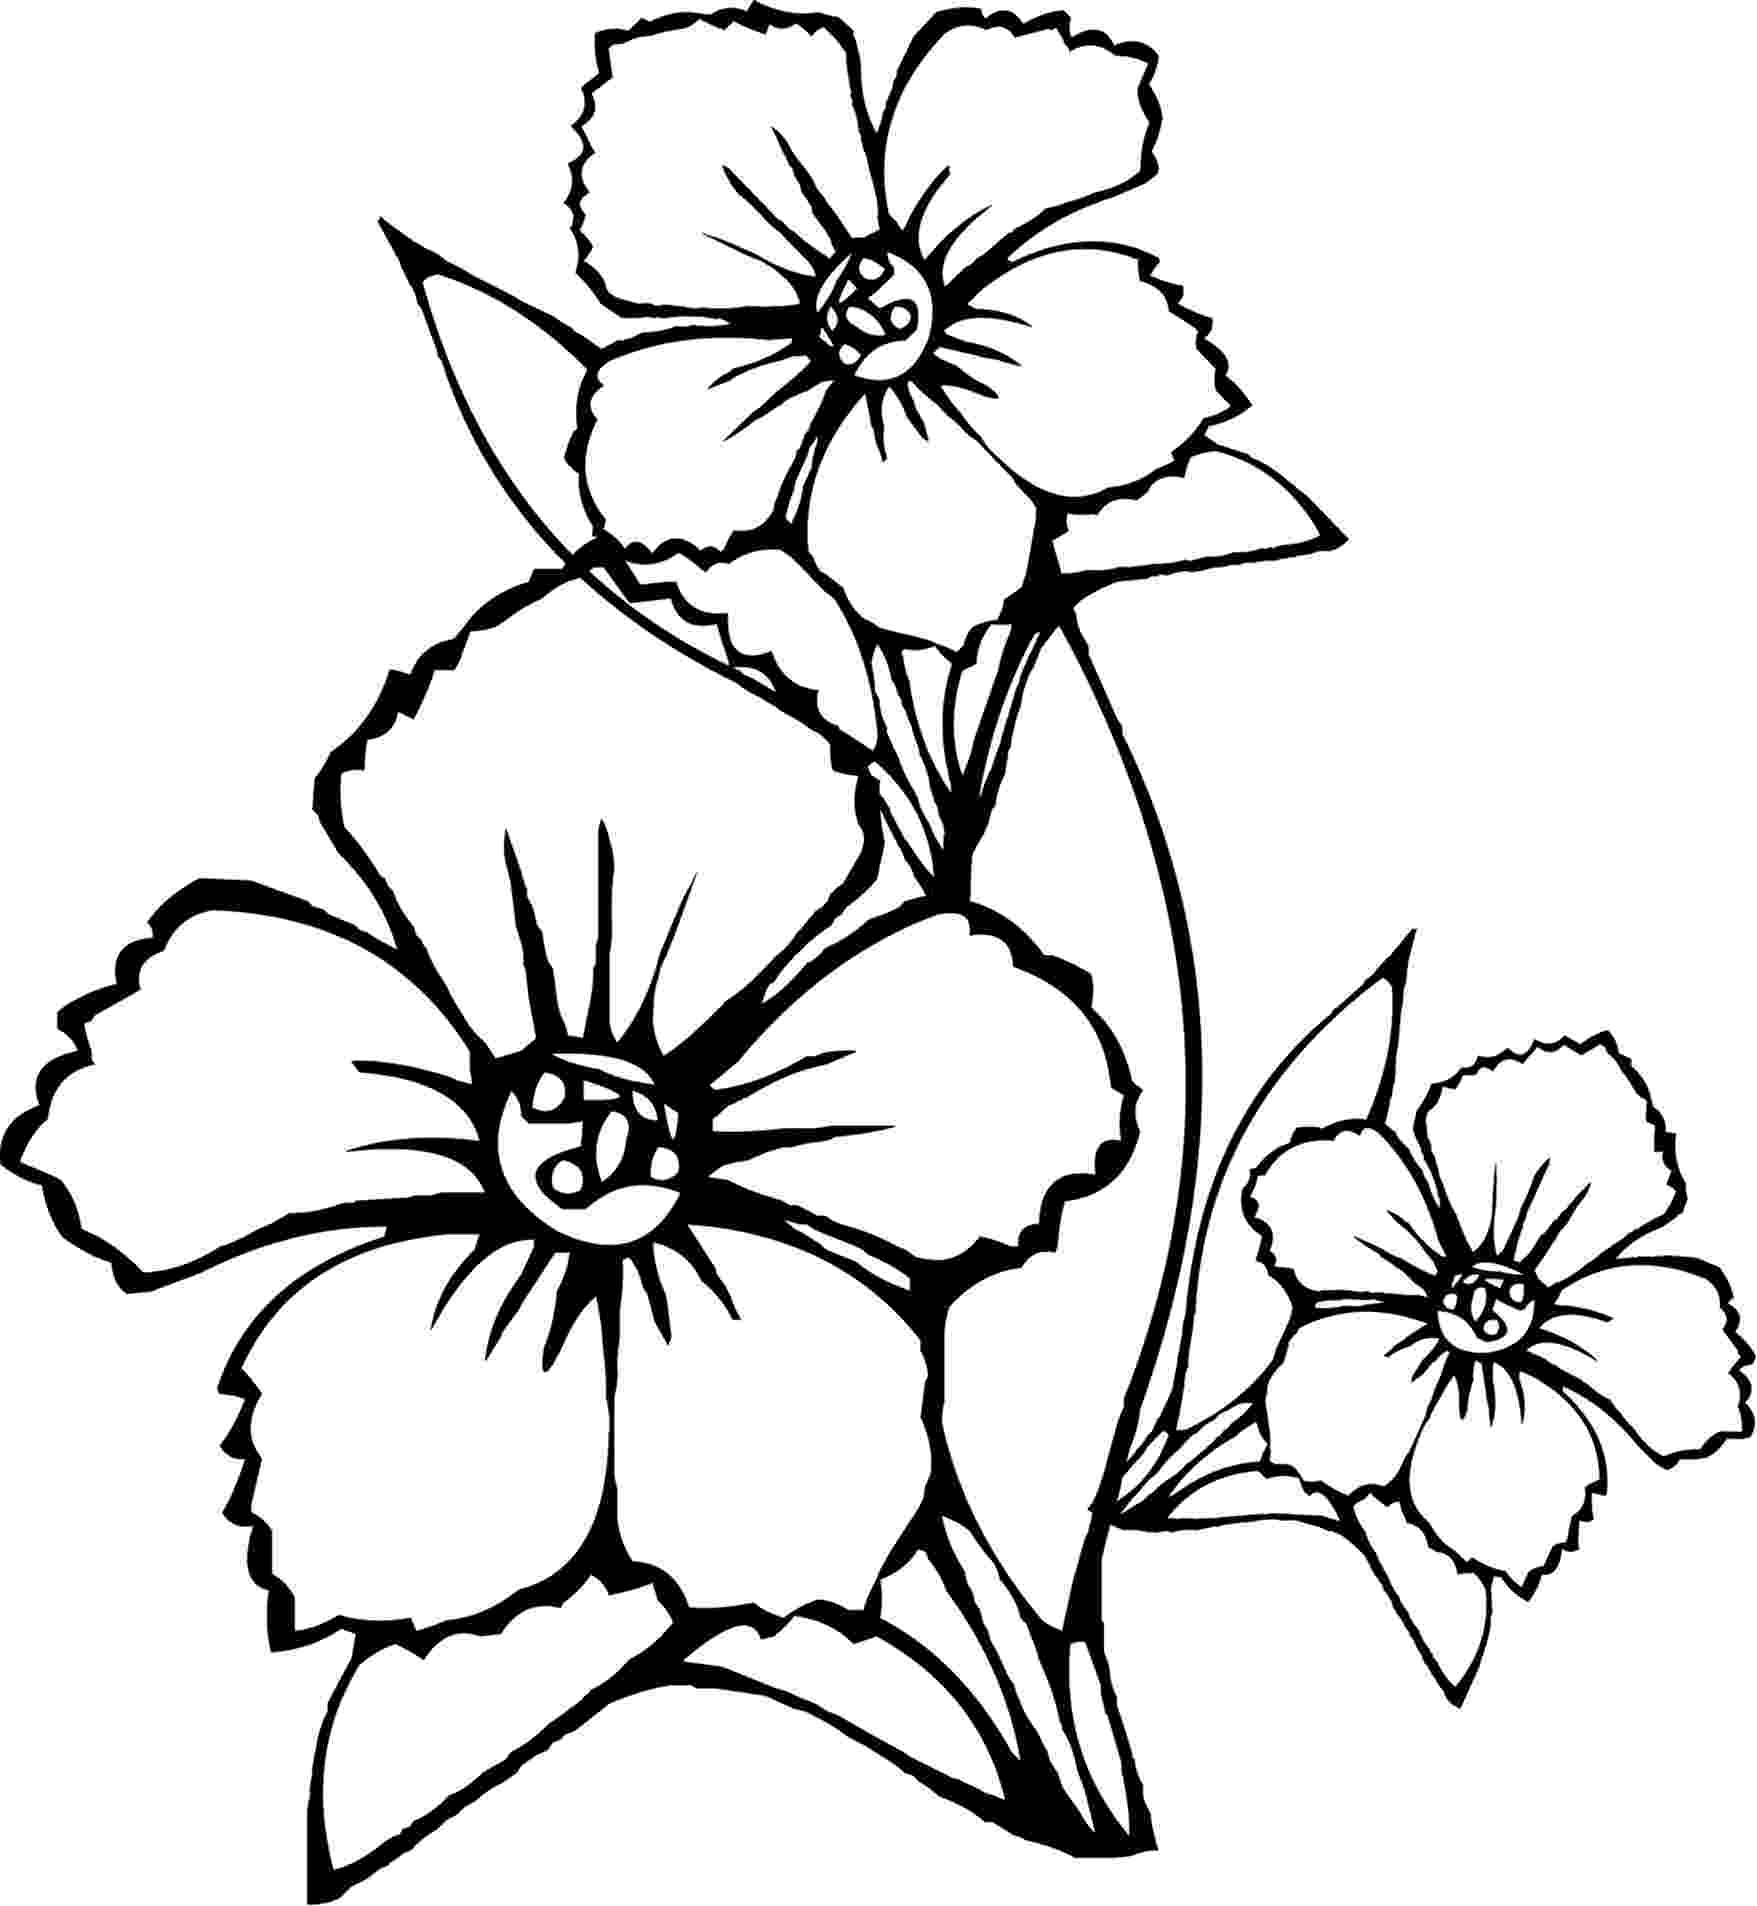 pics of flowers to color free printable flower coloring pages for kids best to pics flowers of color